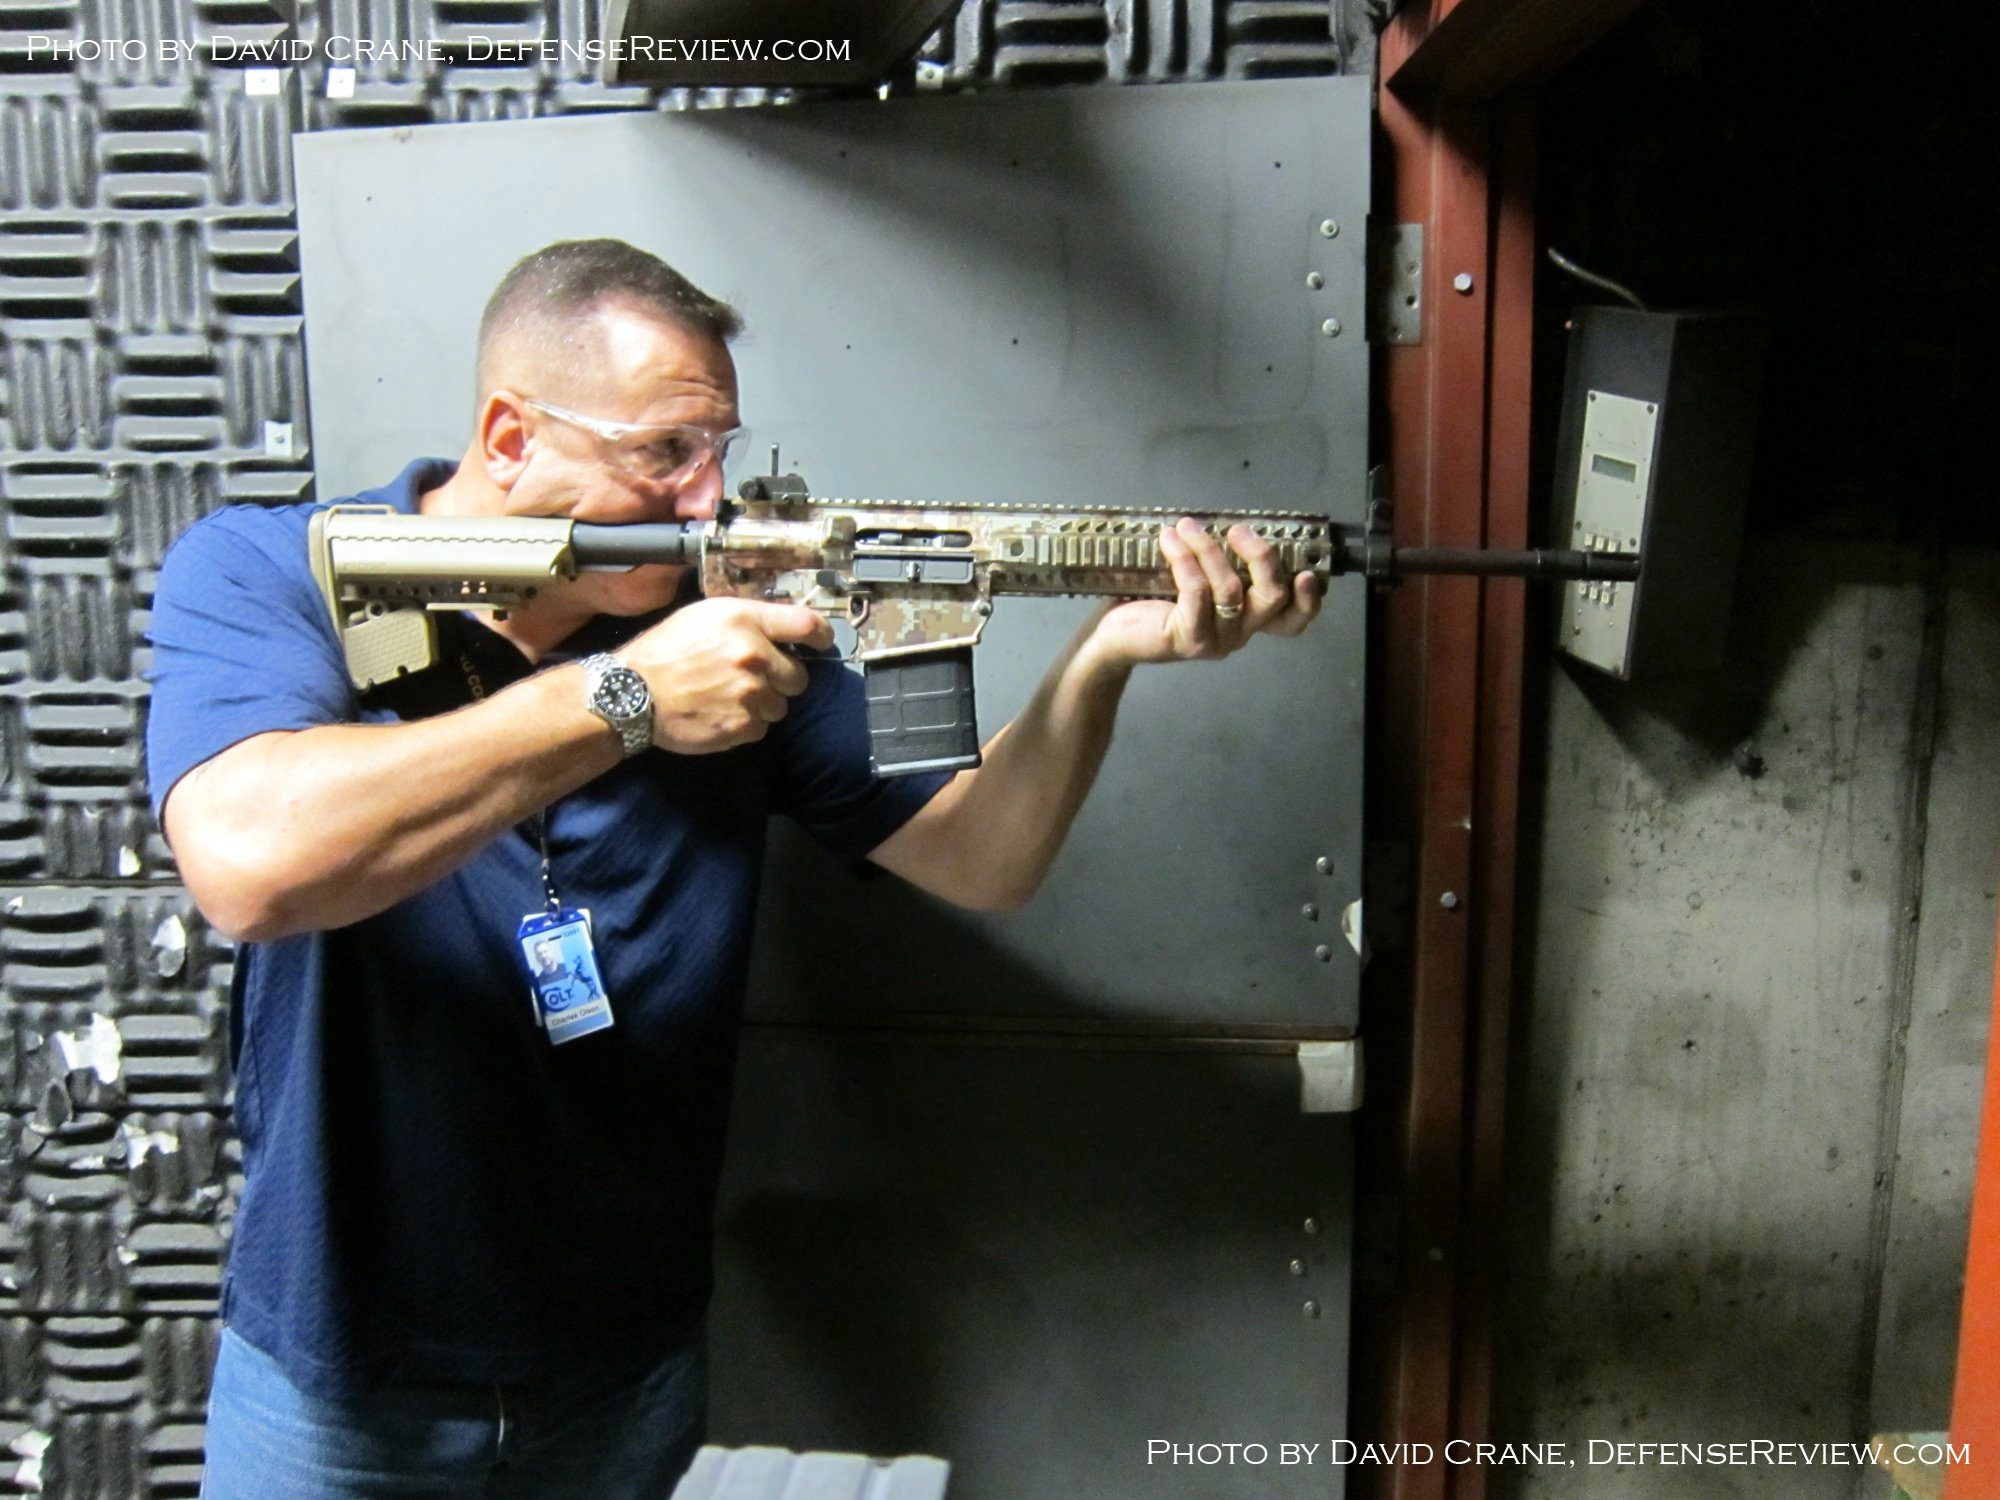 Colt CM901 Chuck Olsen David Crane DefenseReview.com 15 Small <!  :en  >DR Exclusive First Look!: SCAR Who? Meet the Colt Modular Carbine (CMC) Model CM901 Multi Caliber 7.62mm NATO Battle Rifle / 5.56mm NATO Assault Rifle for U.S. Military Special Operations Forces (SOF) and General Infantry Forces (GIF). DefenseReview (DR) Reports (Photos and Video!) <!  :  >